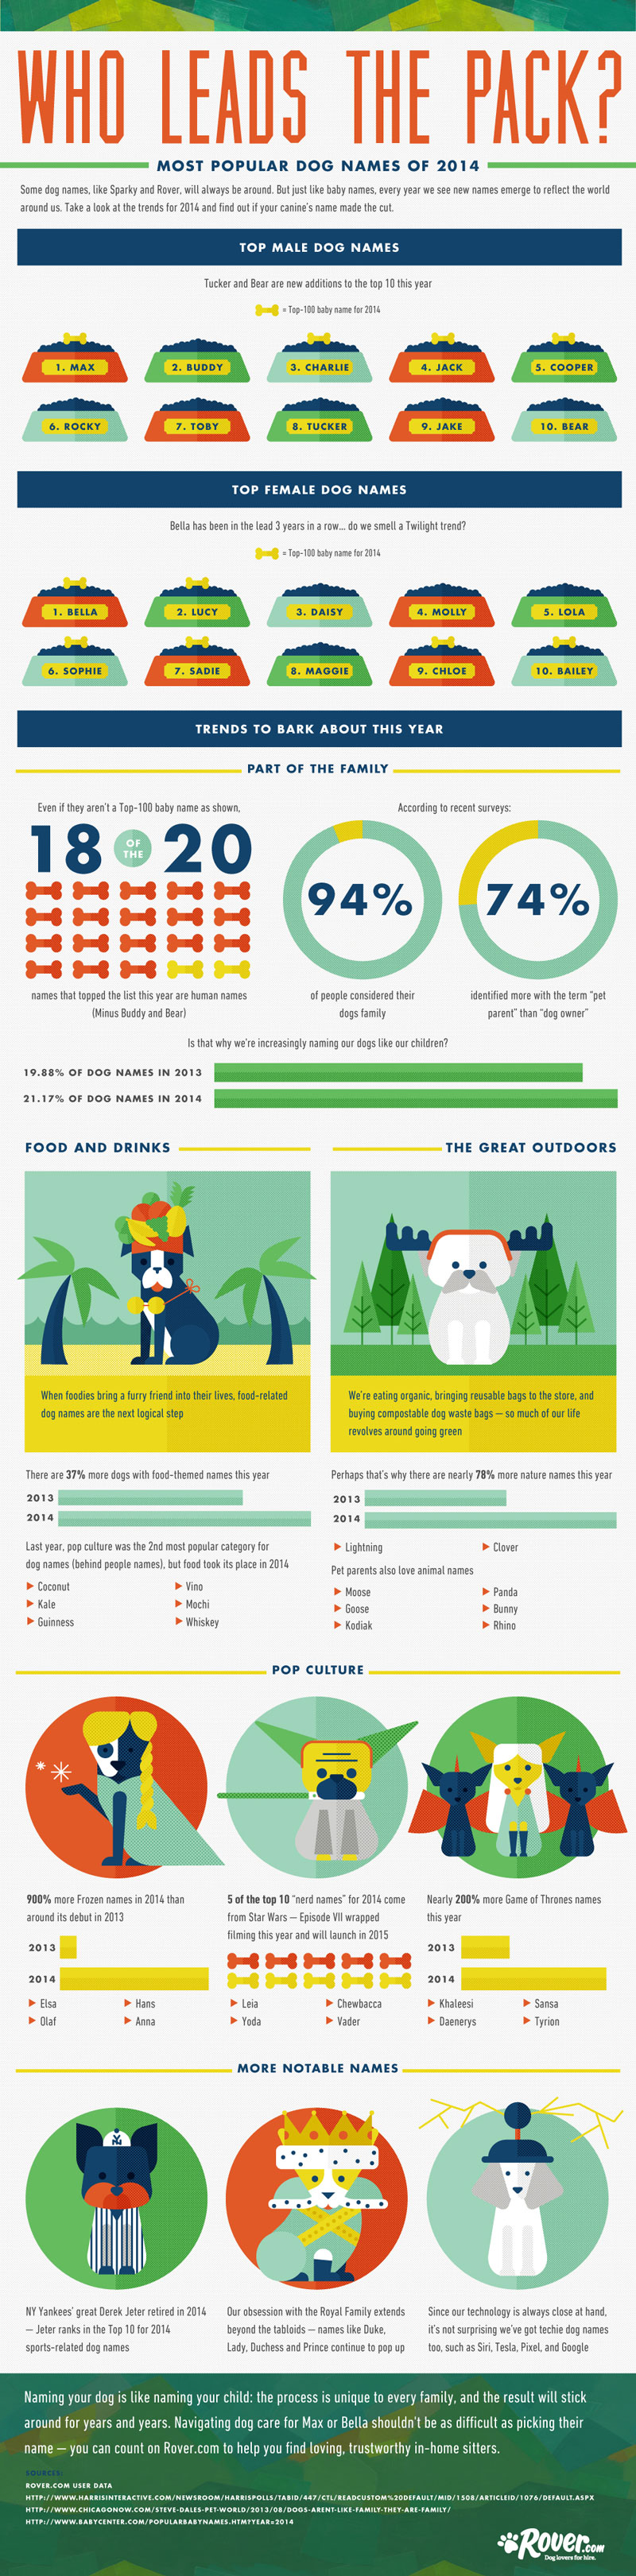 Pet Names For People: The Most Popular Dog Names Of 2014 : People.com